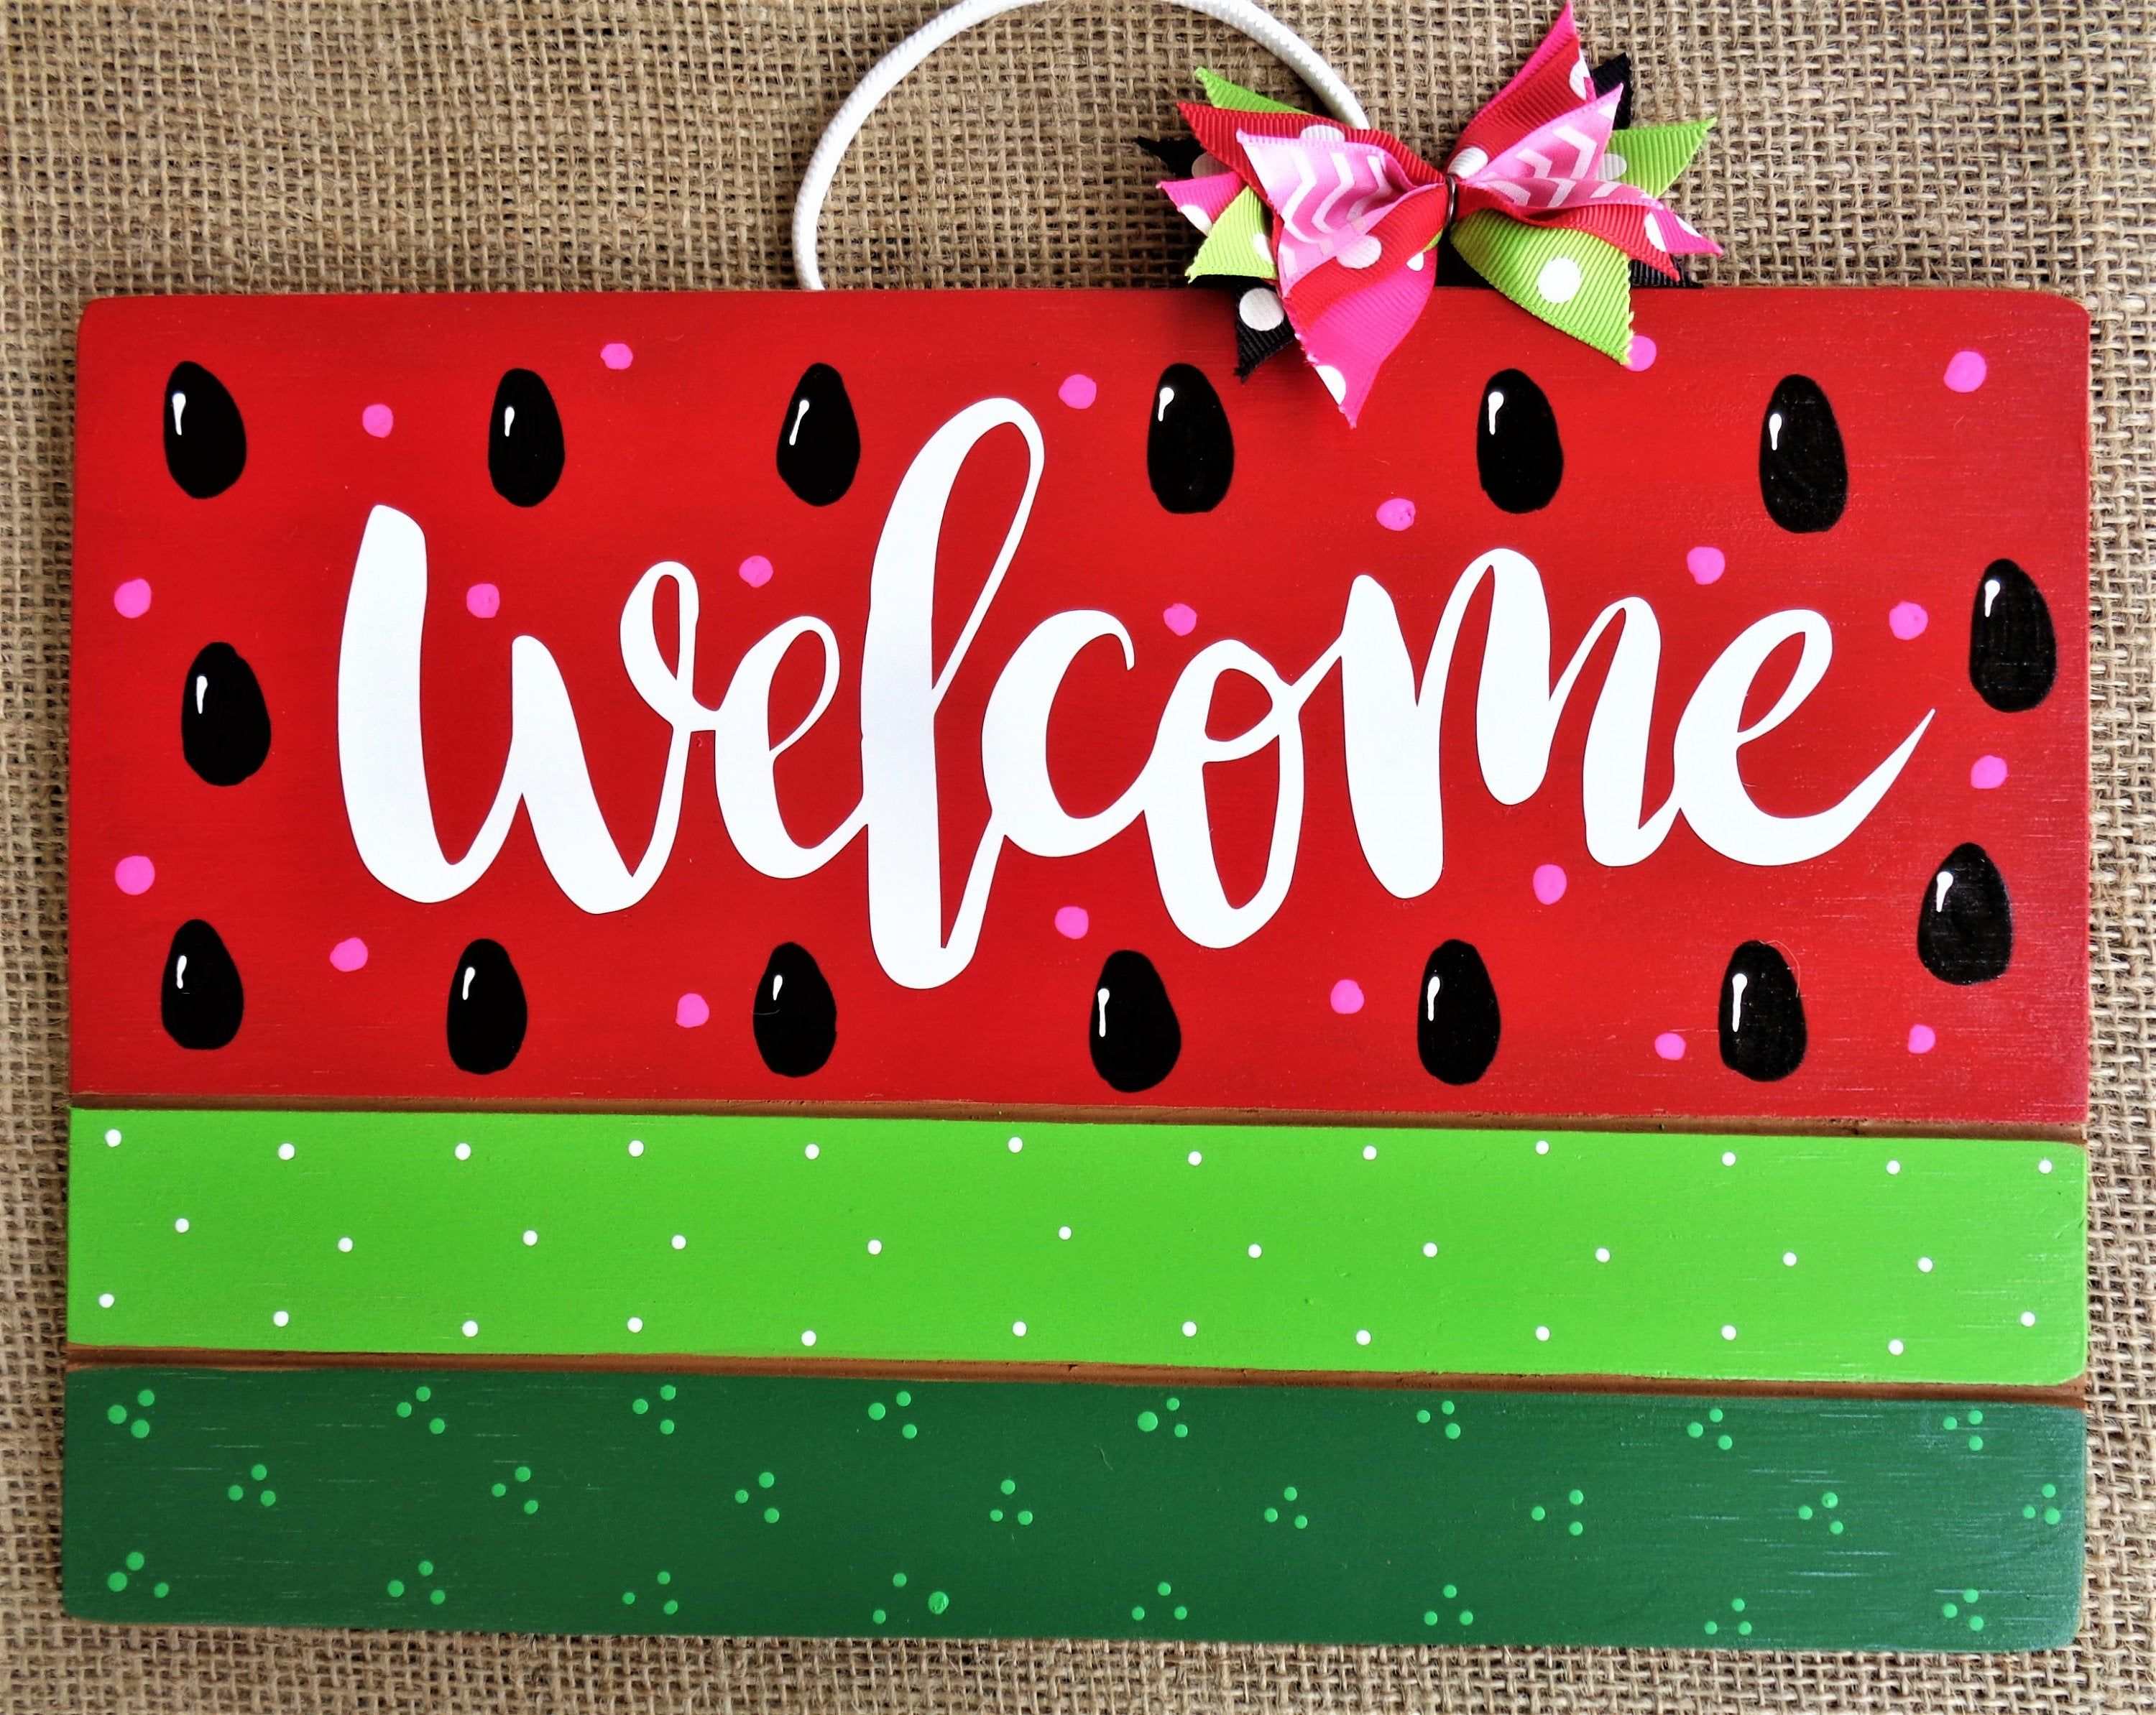 Pin By 3craftymillers On Watermelon Theme In 2020 Hand Painted Decor Decks And Porches Wall Signs